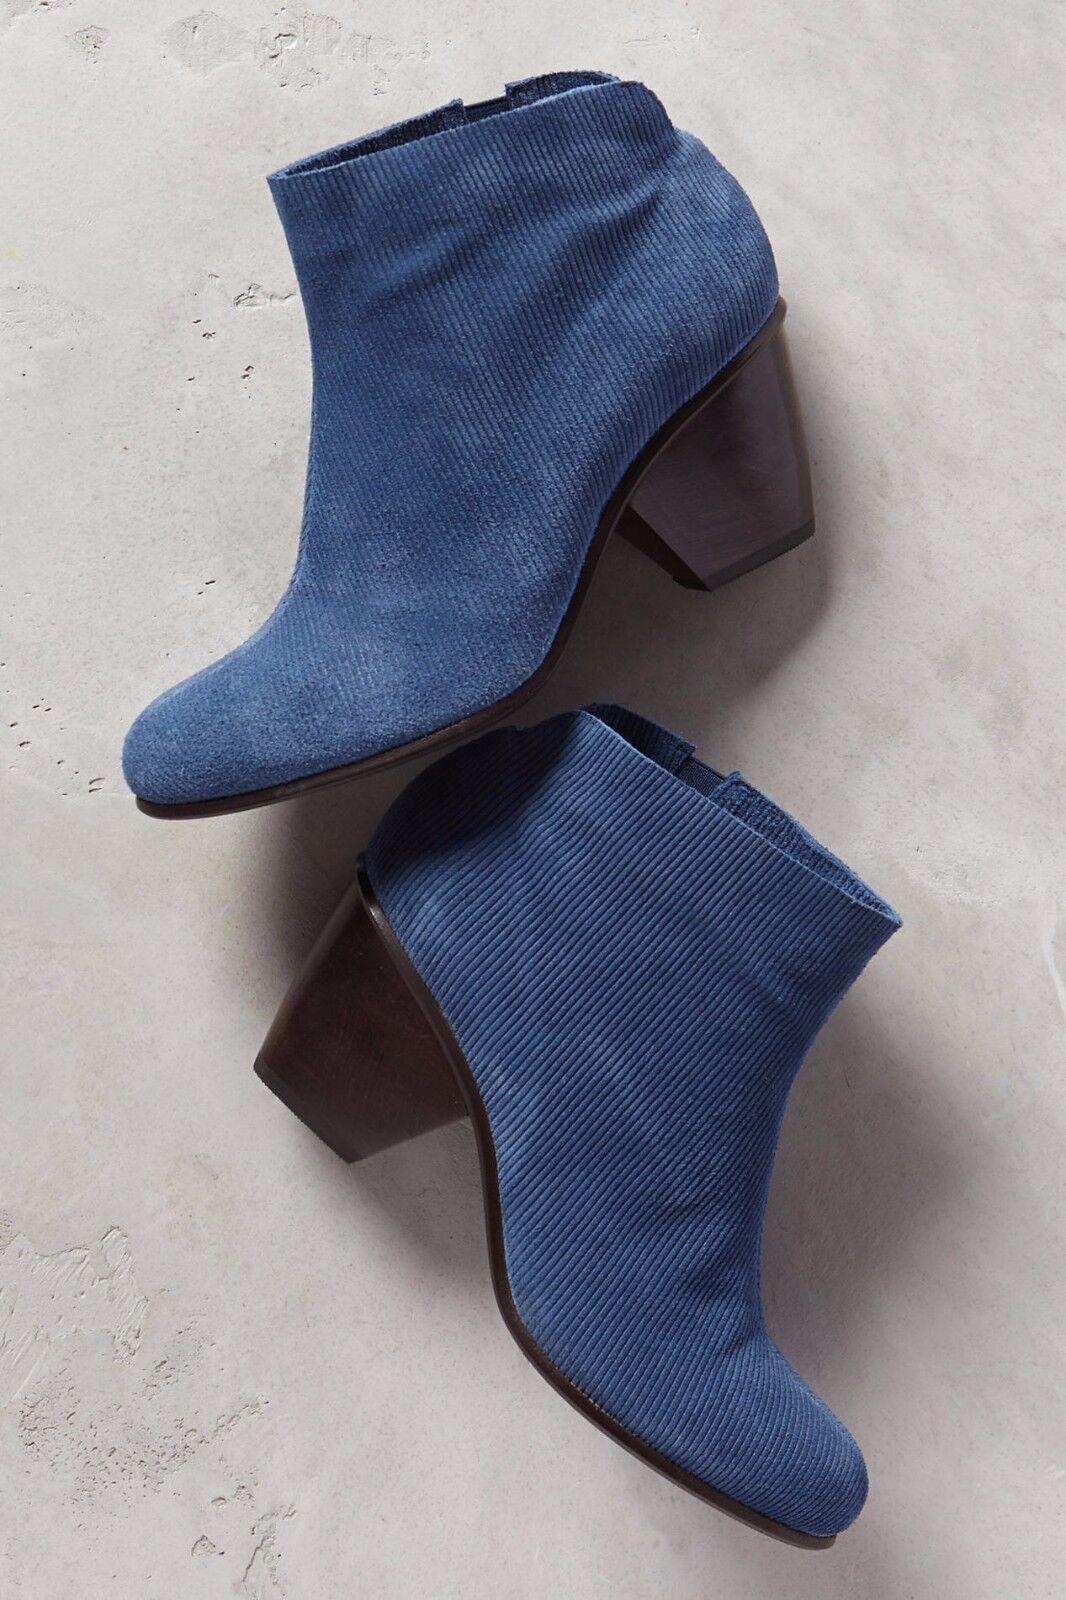 ANTHROPOLOGIE COCLICO DORE BOOTS 37 BLU ANKLE BOOTIES SCARPE PULL ON  395